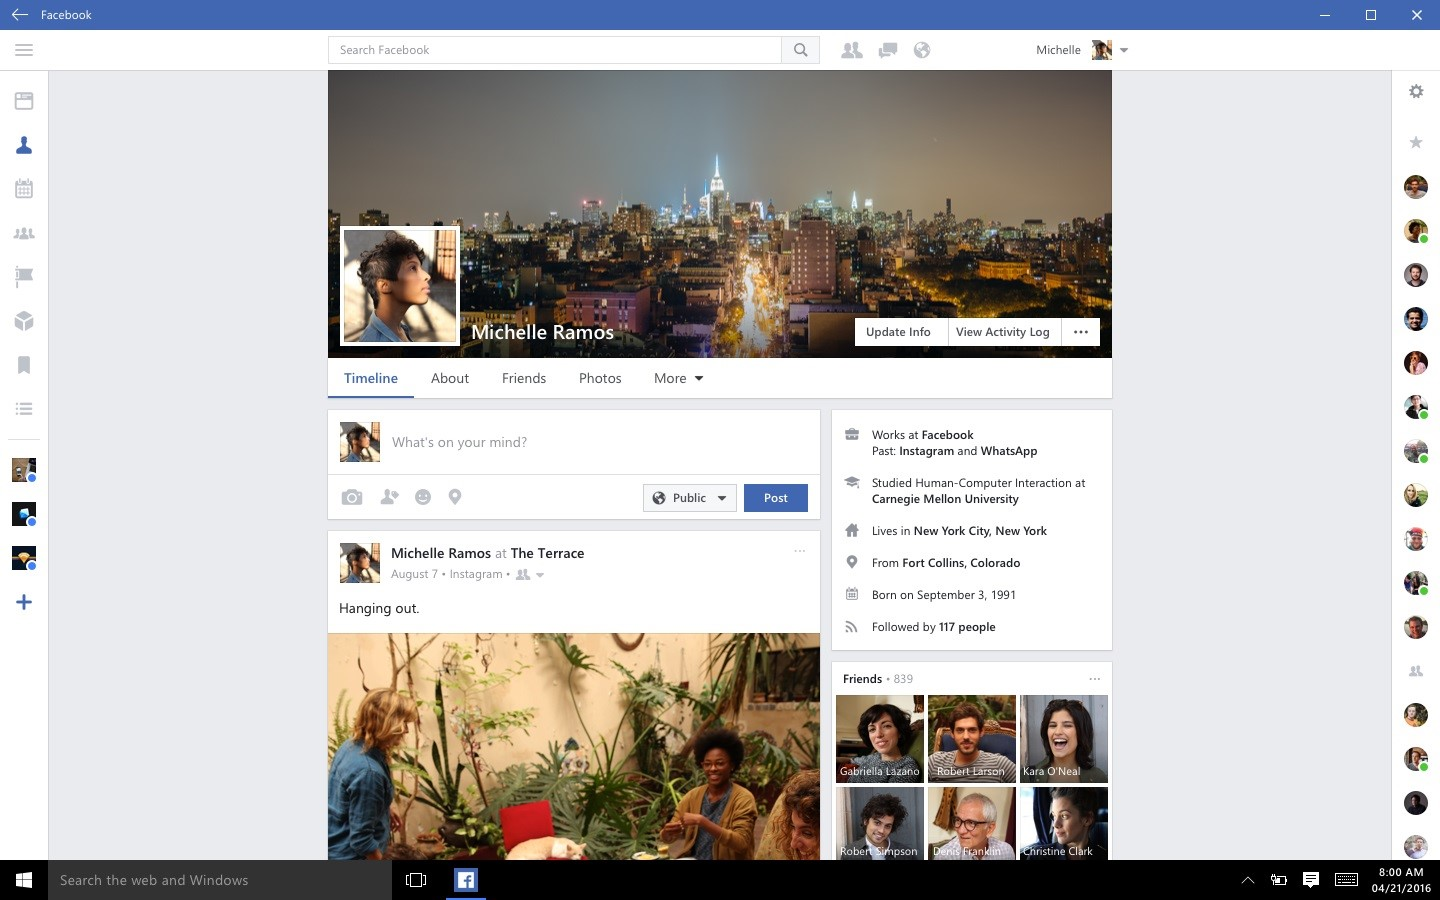 New Facebook app now available to download, Instagram out of